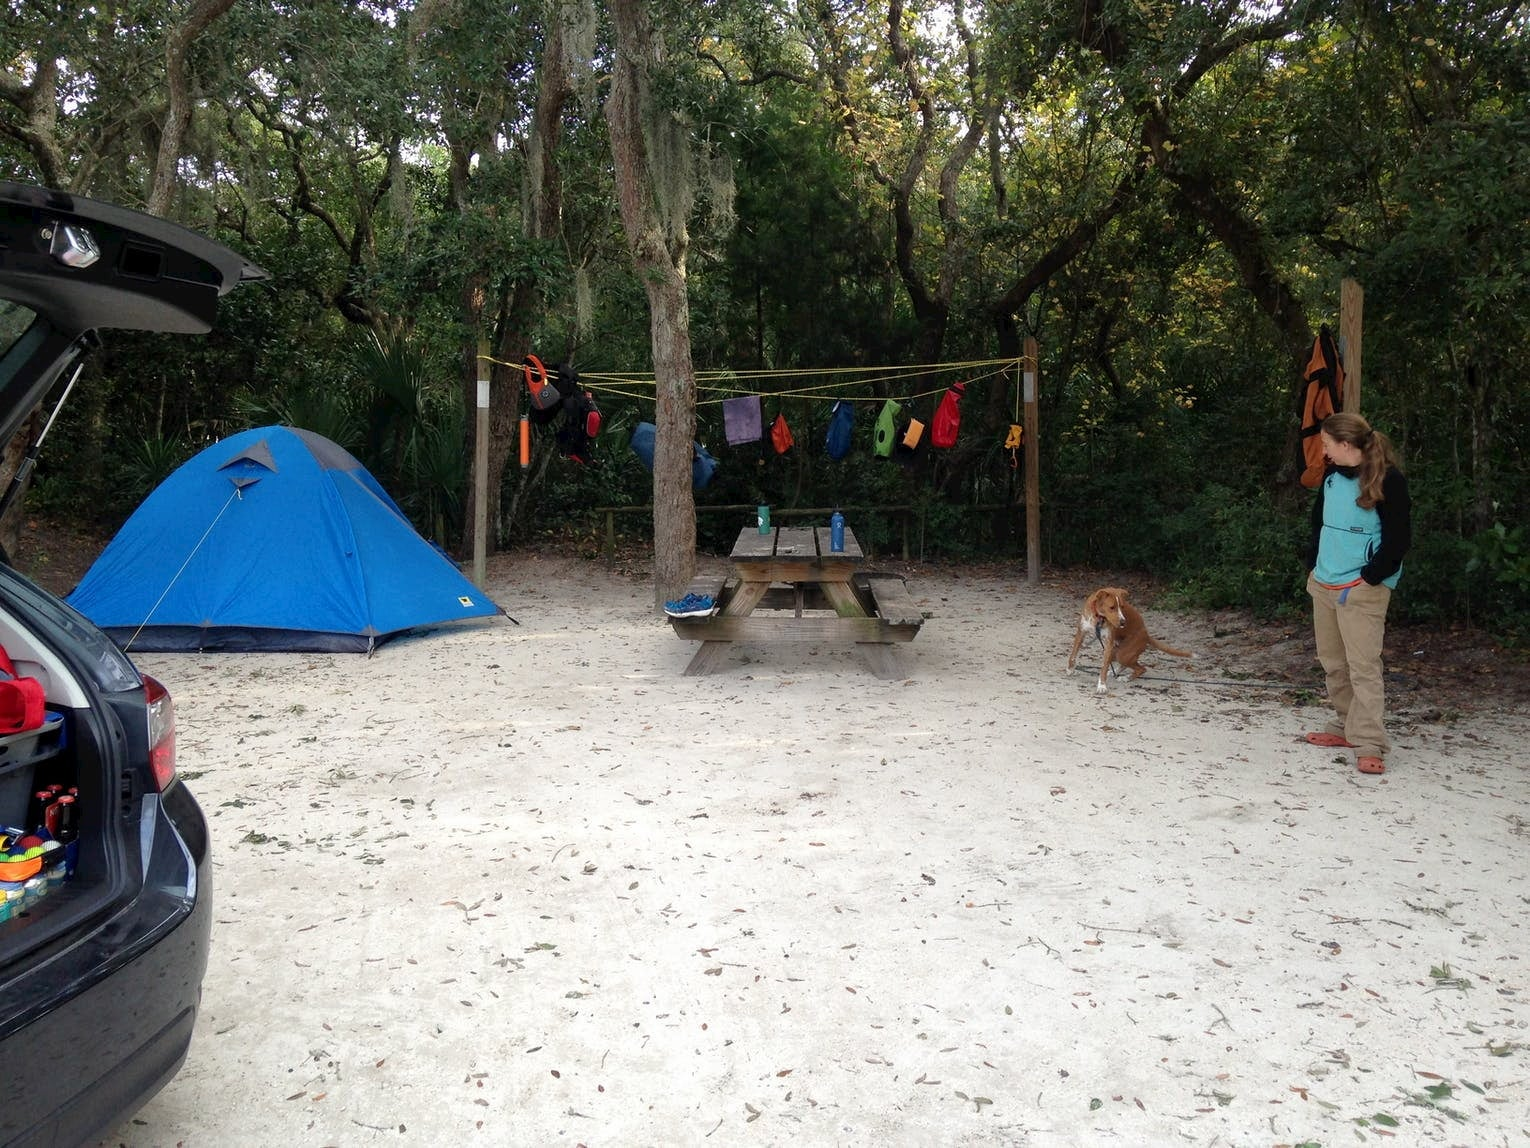 Blue tent setup beside clothes line at a campground with a woman and her dog.